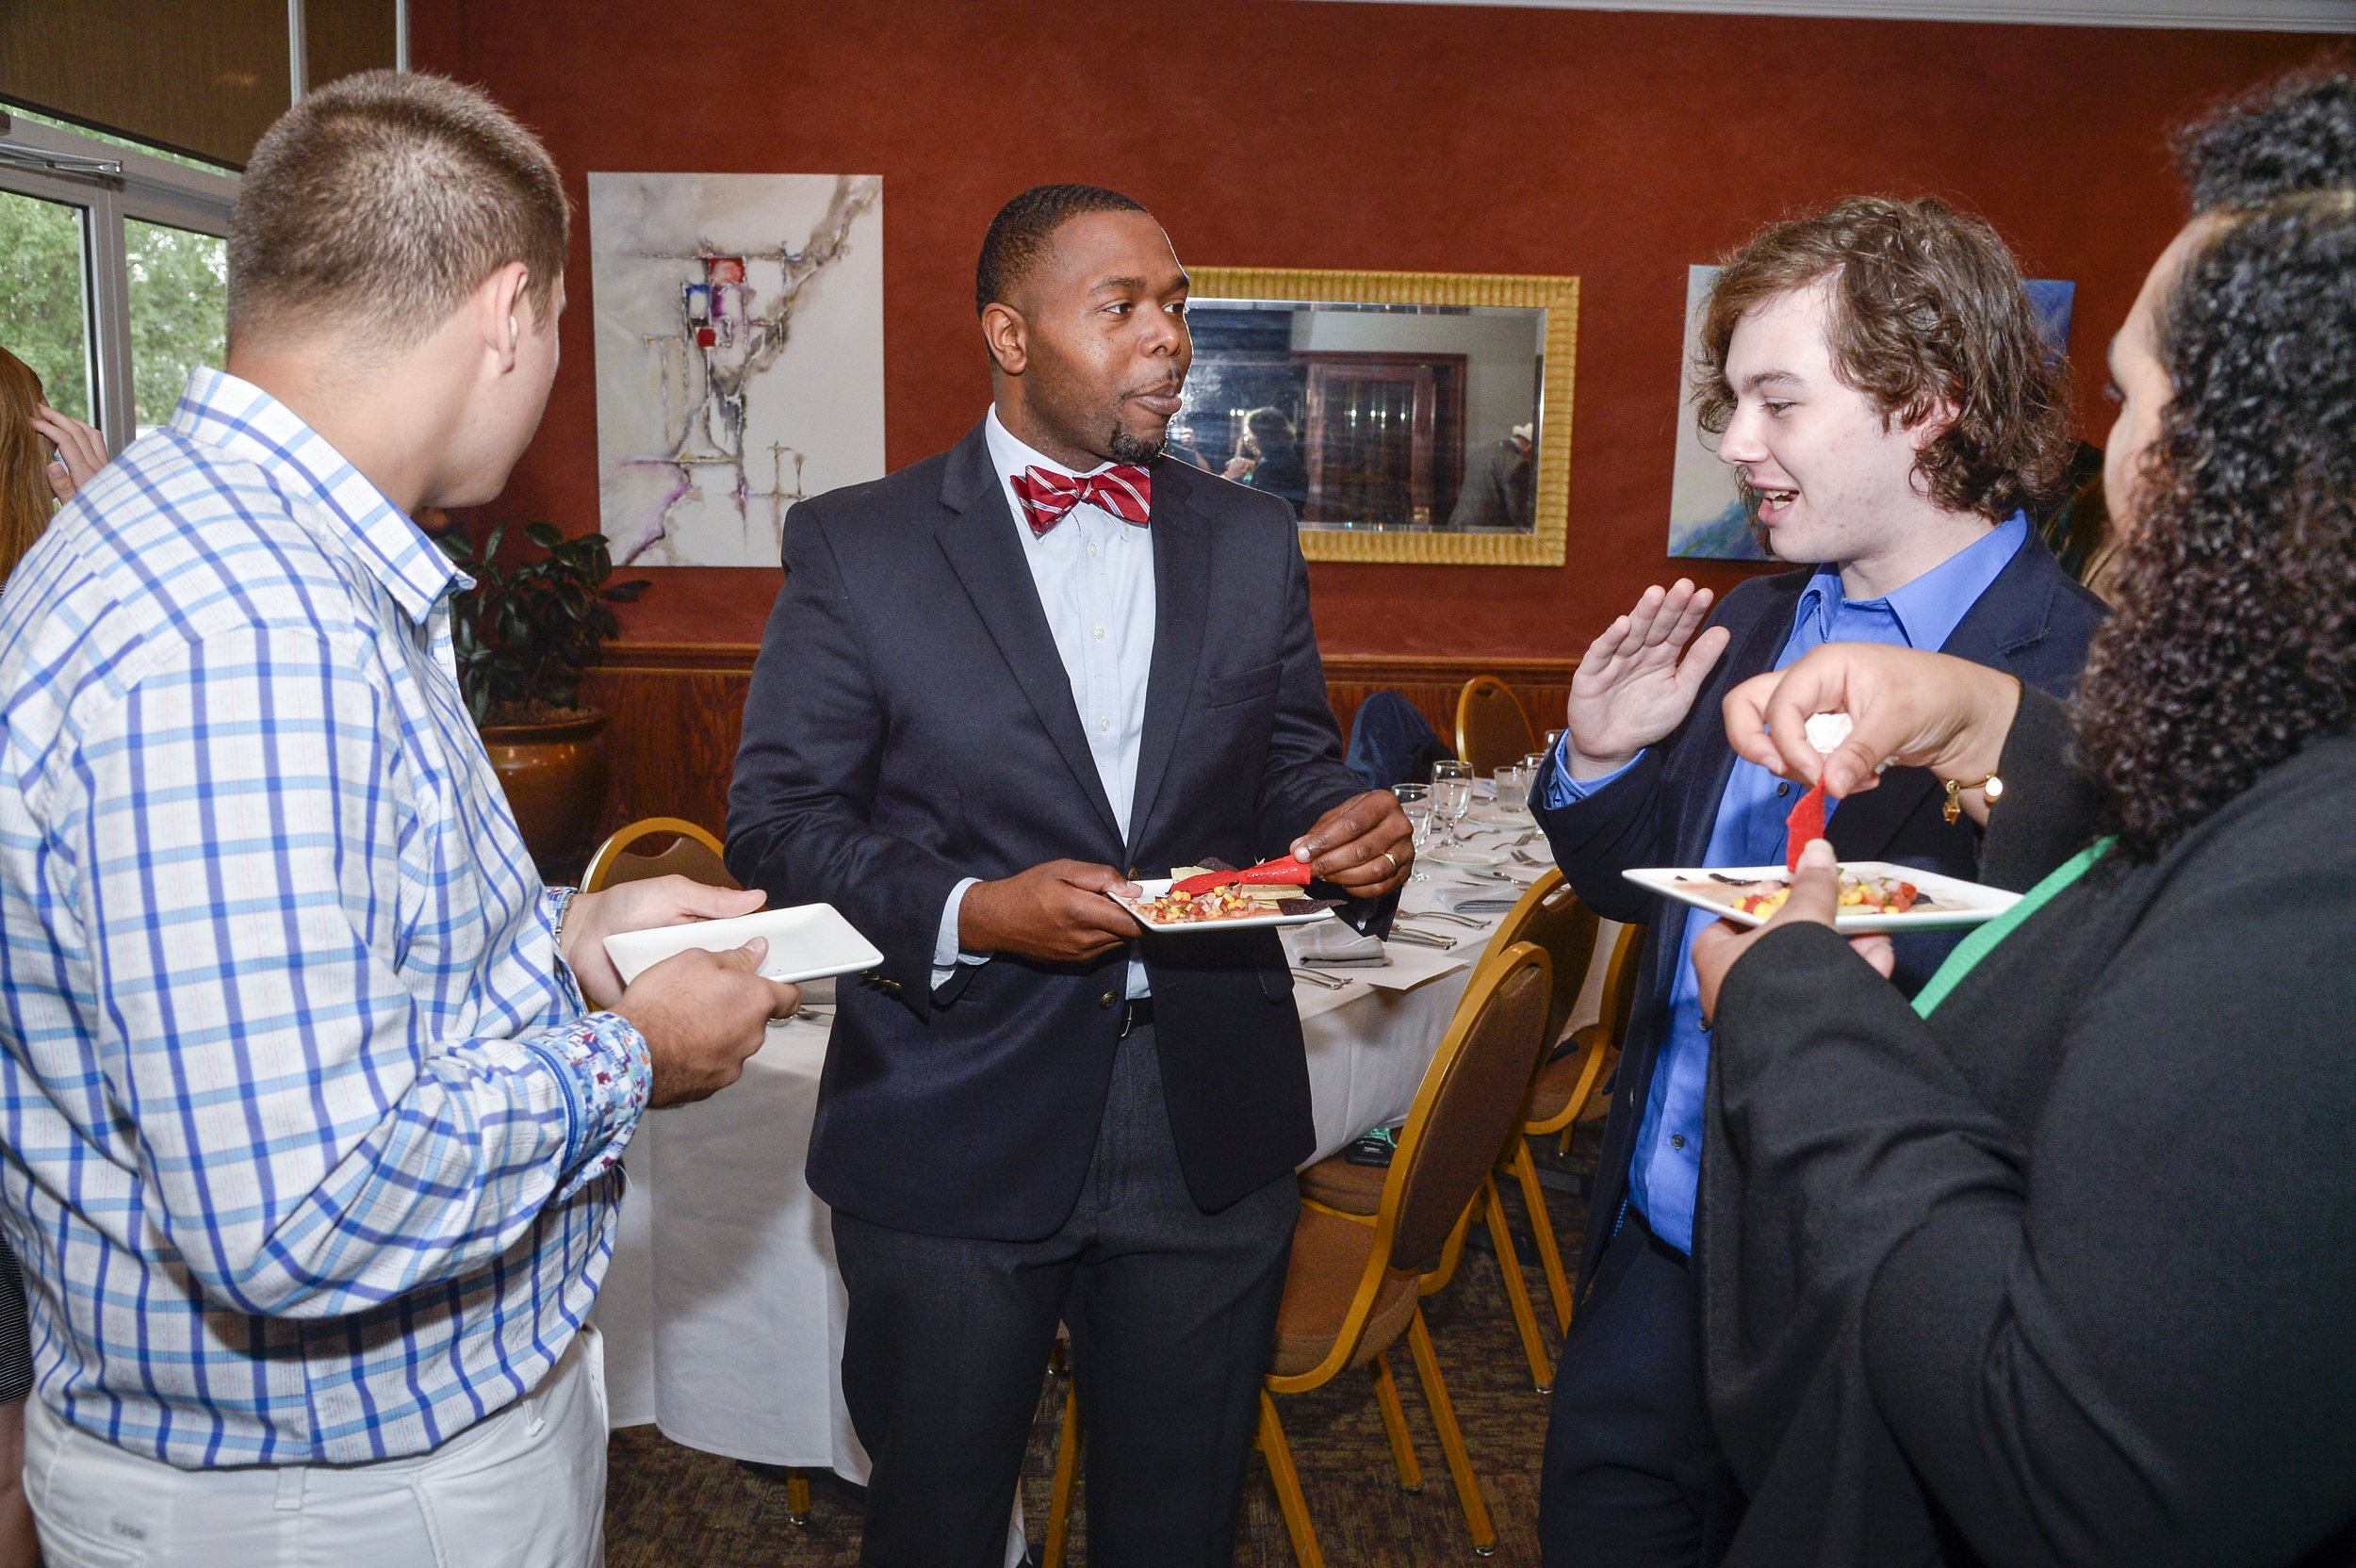 James with students at Wofford College during a business etiquette event.